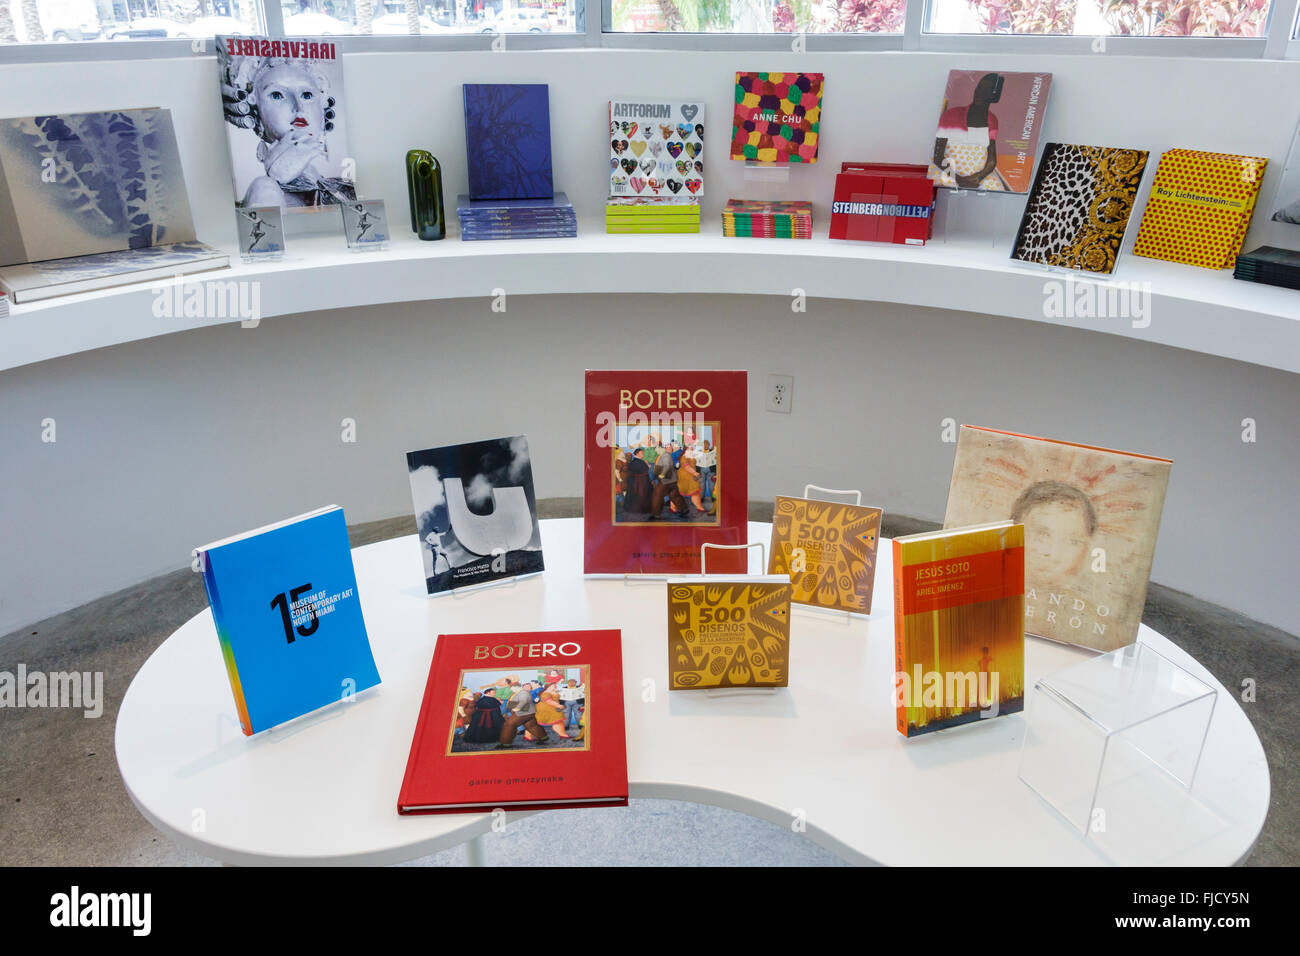 North Miami Florida Museum Of Contemporary Art Gallery Artwork Gift Shop Books Display Sale Shopping